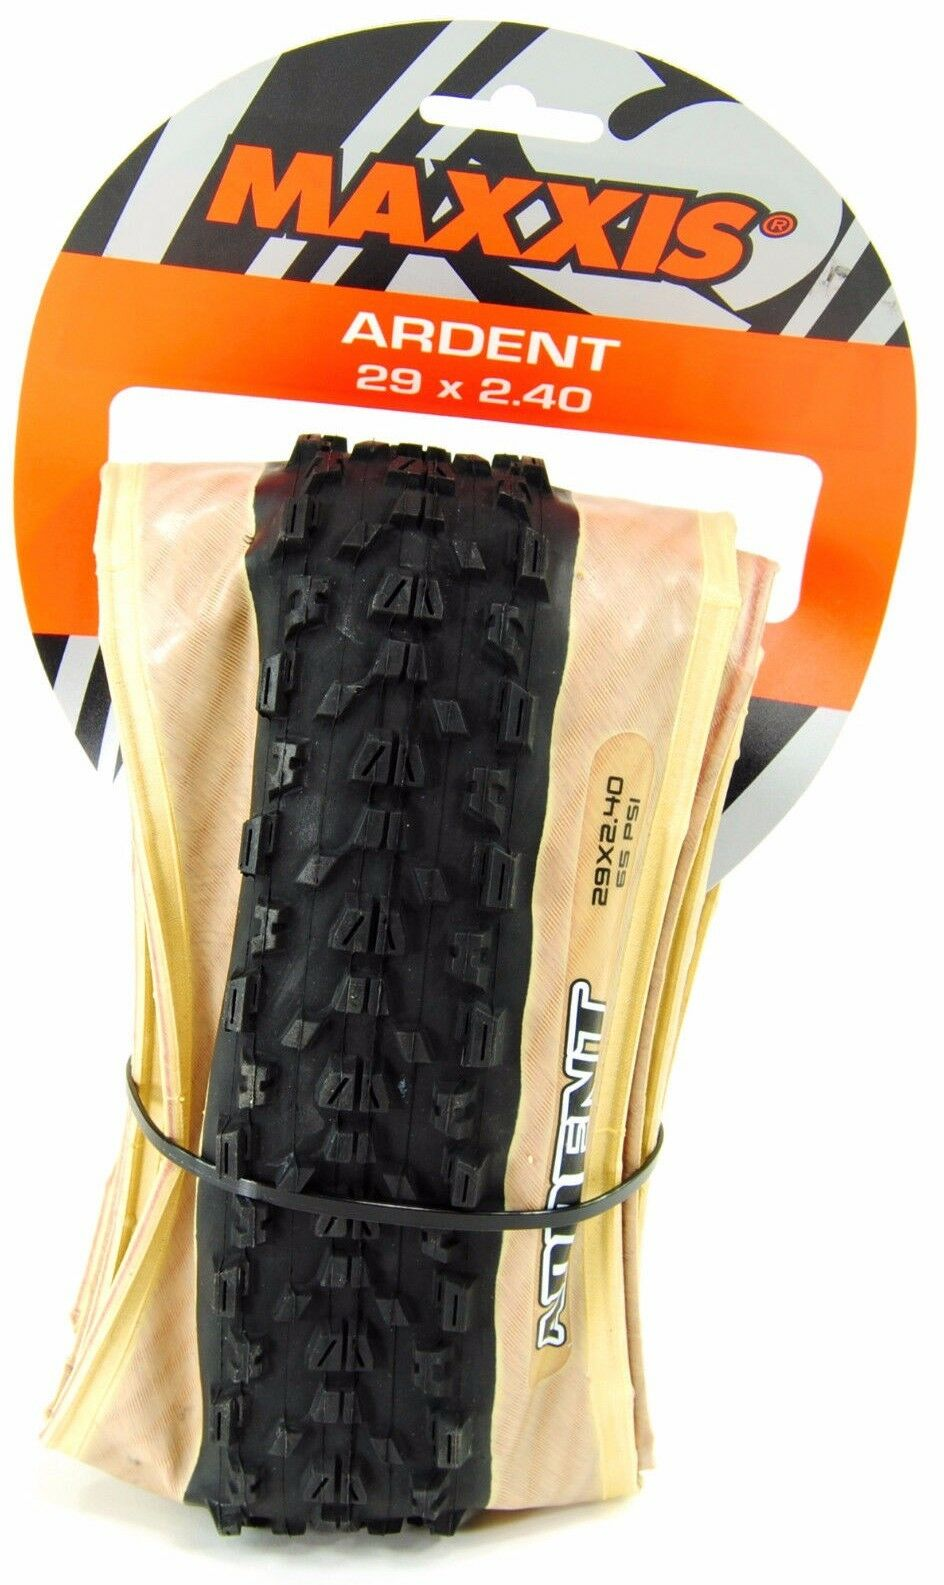 Maxxis Ardent 29 x 2.40 Tire, Folding, 60tpi, Single  Compound, Skinwall  exclusive